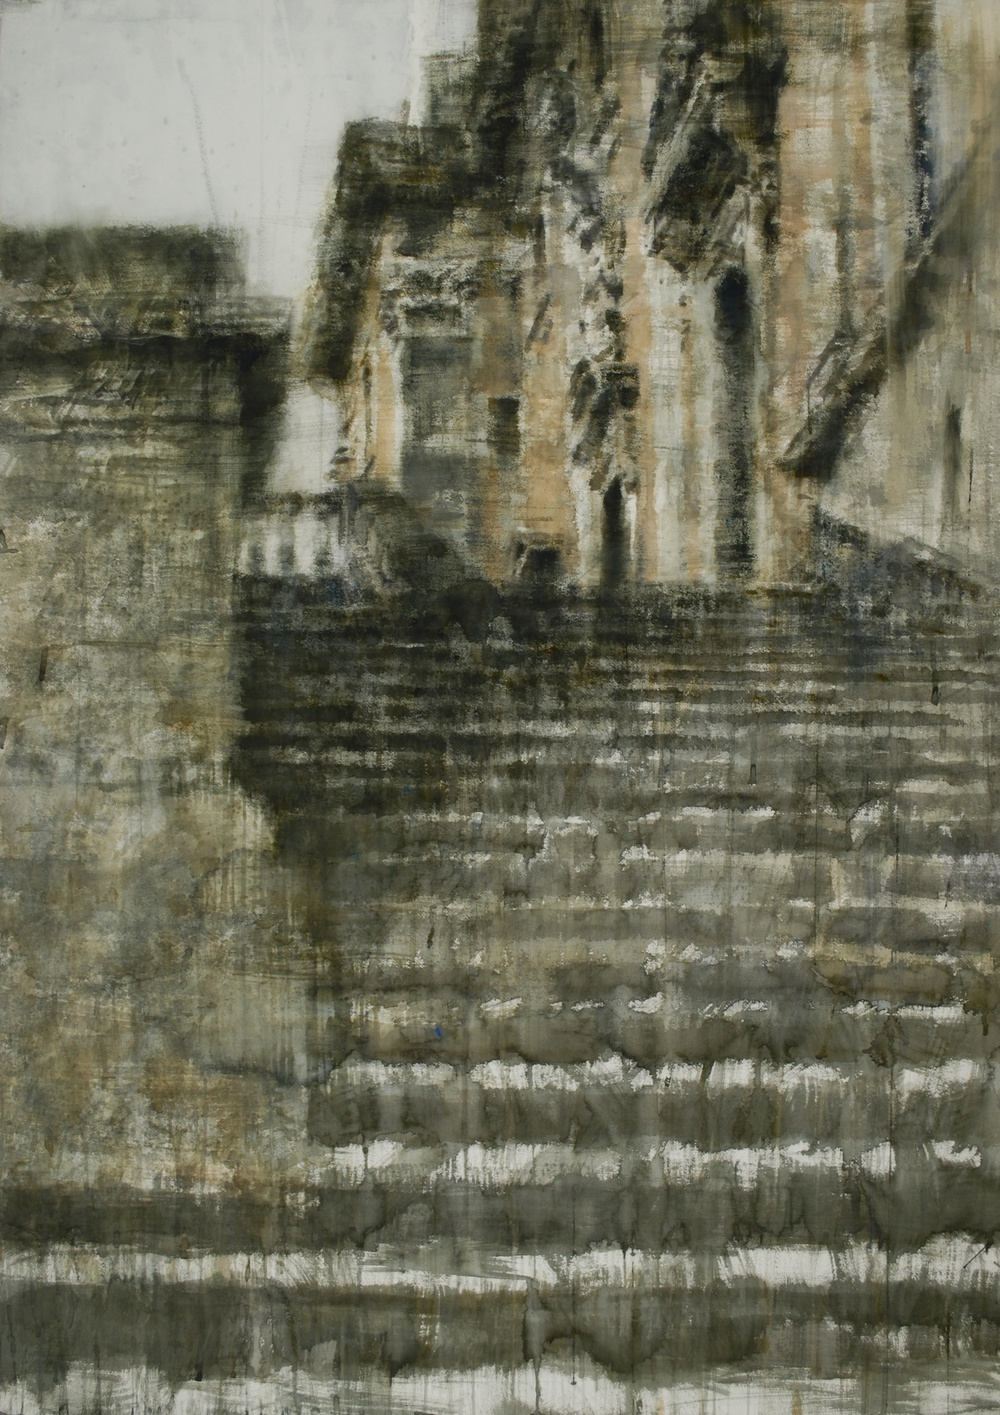 Steps of Rome V, 37x52 inches